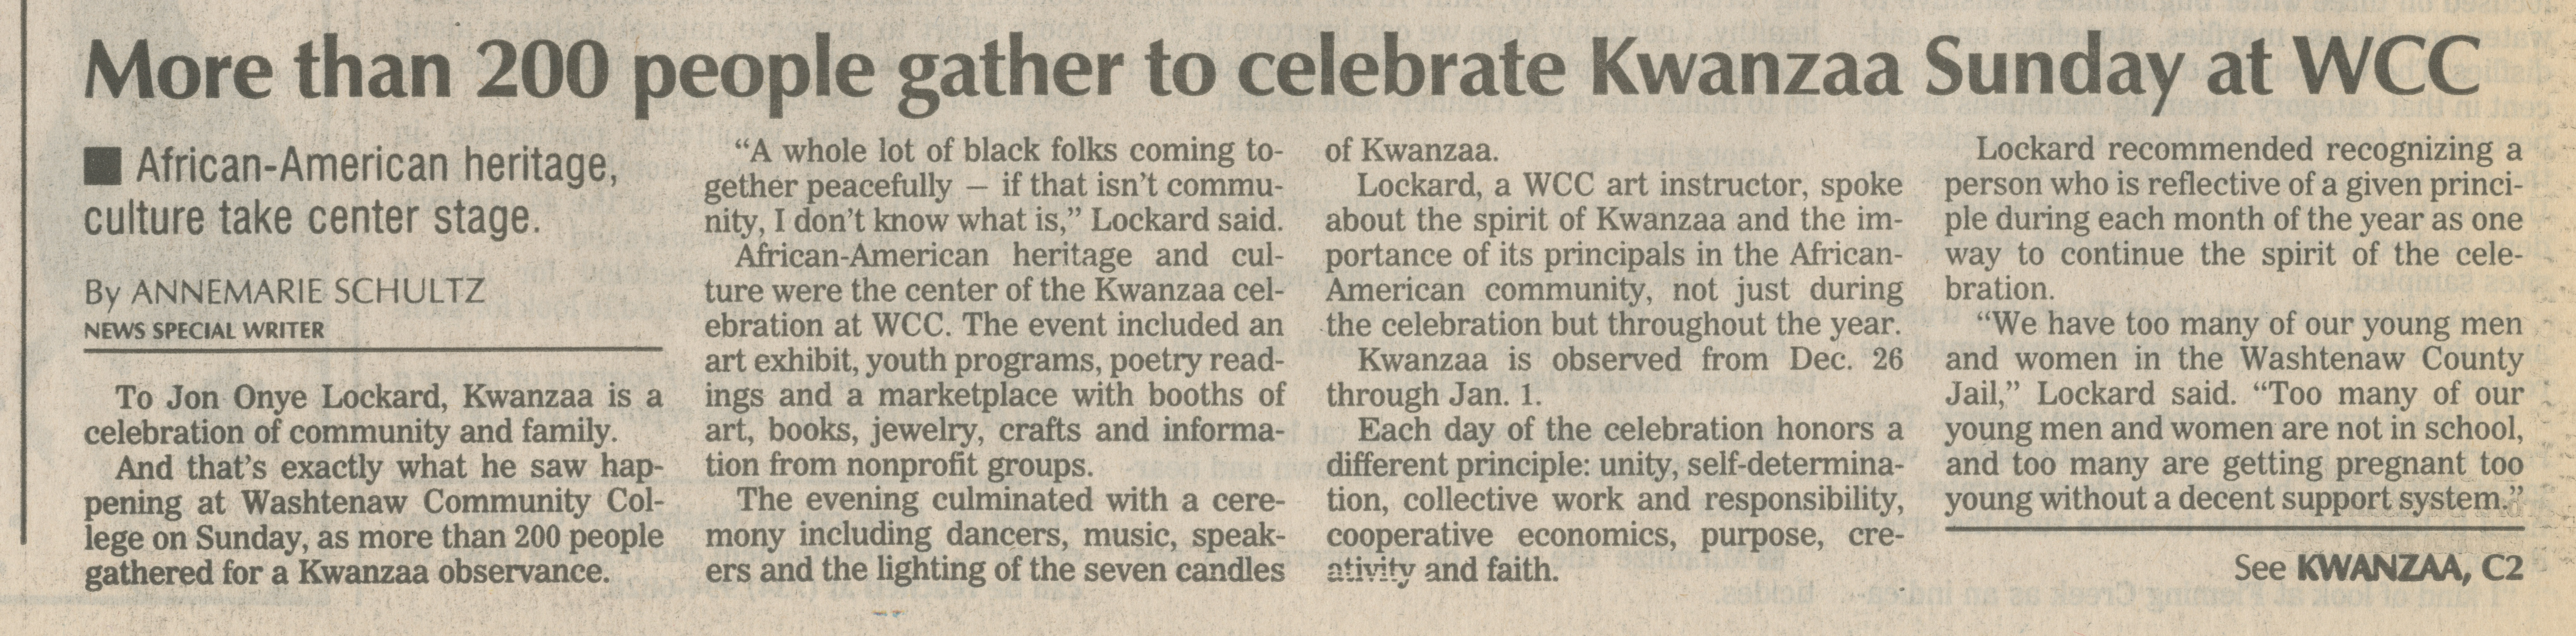 More Than 200 People Gather To Celebrate Kwanzaa Sunday At WCC image